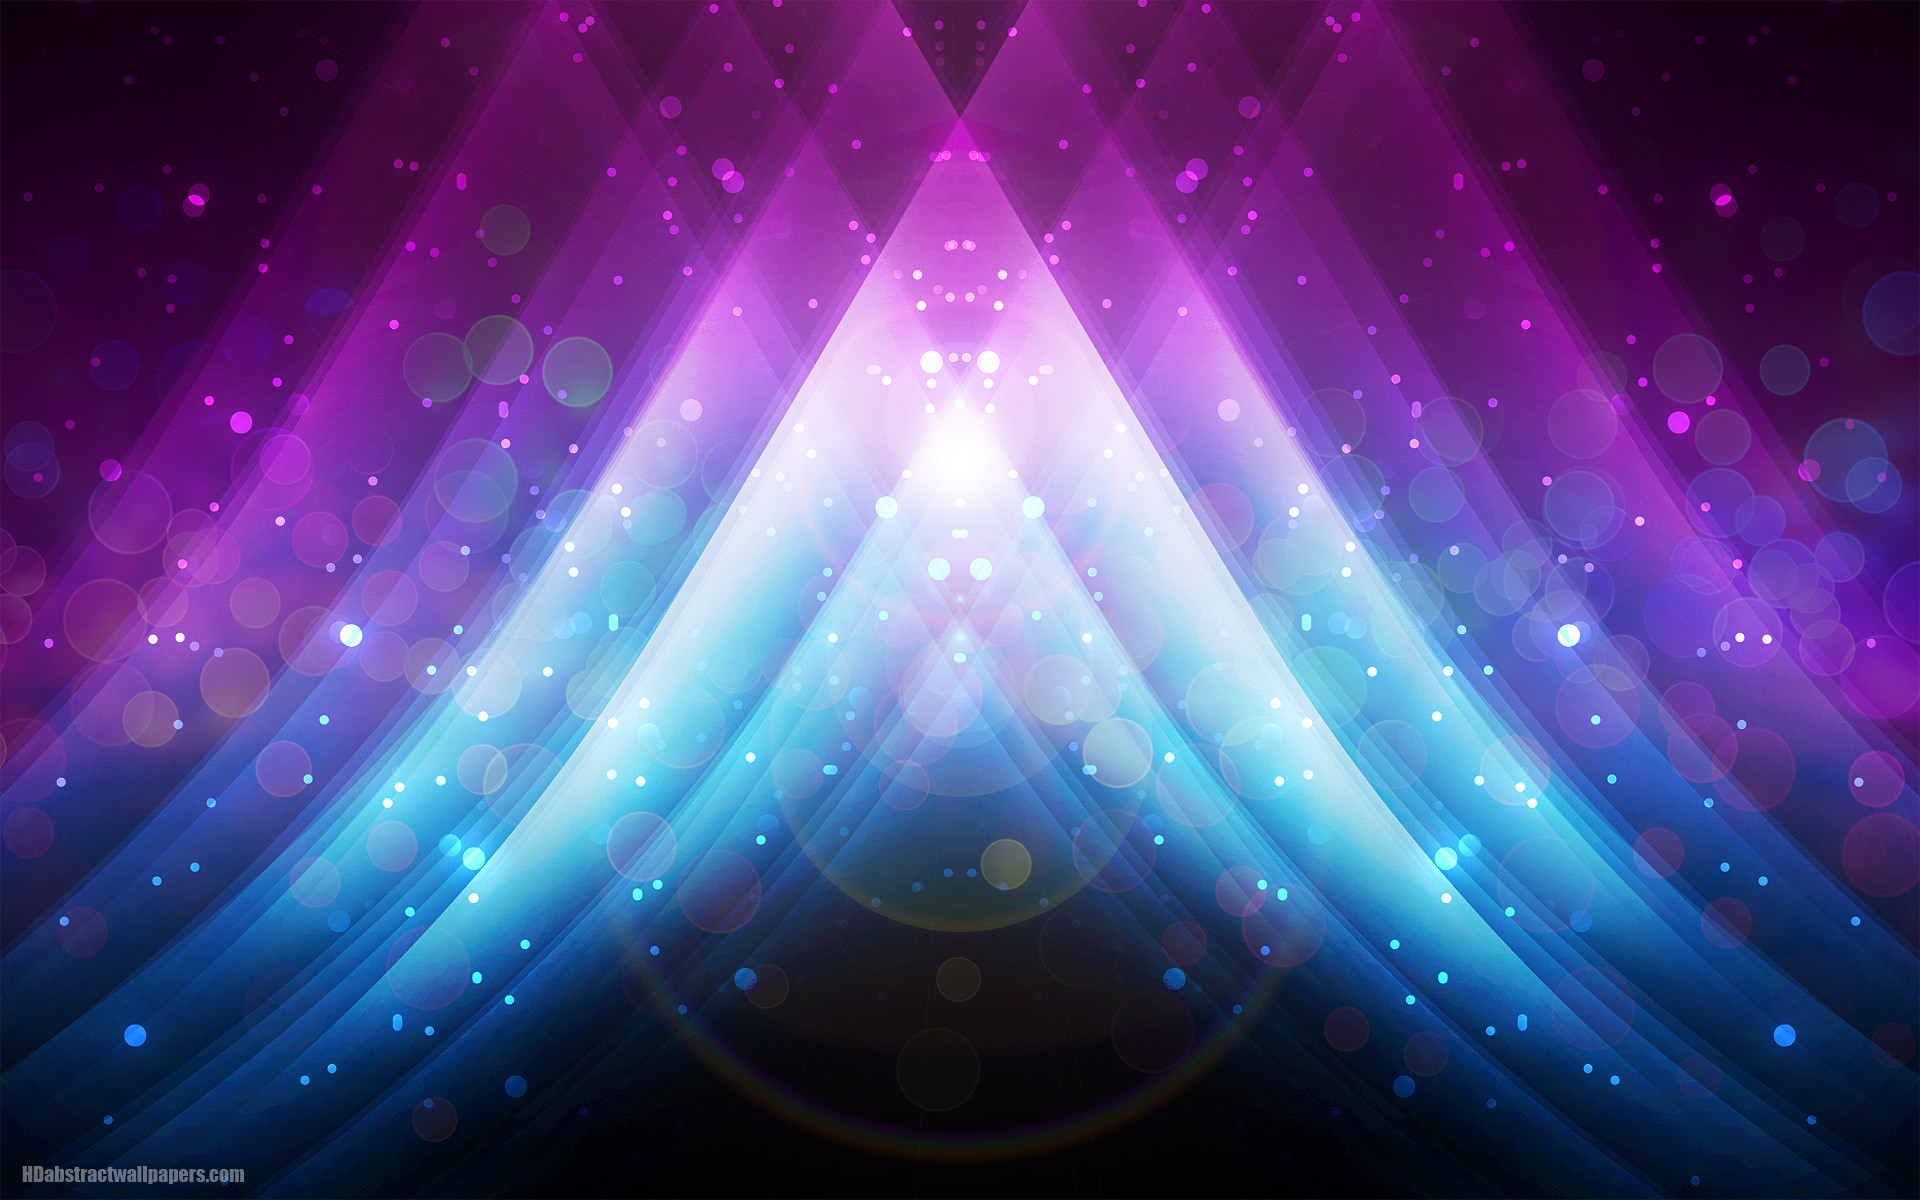 Abstract blue wallpaper with beautiful colors, lights, lines and circles.  With the colors